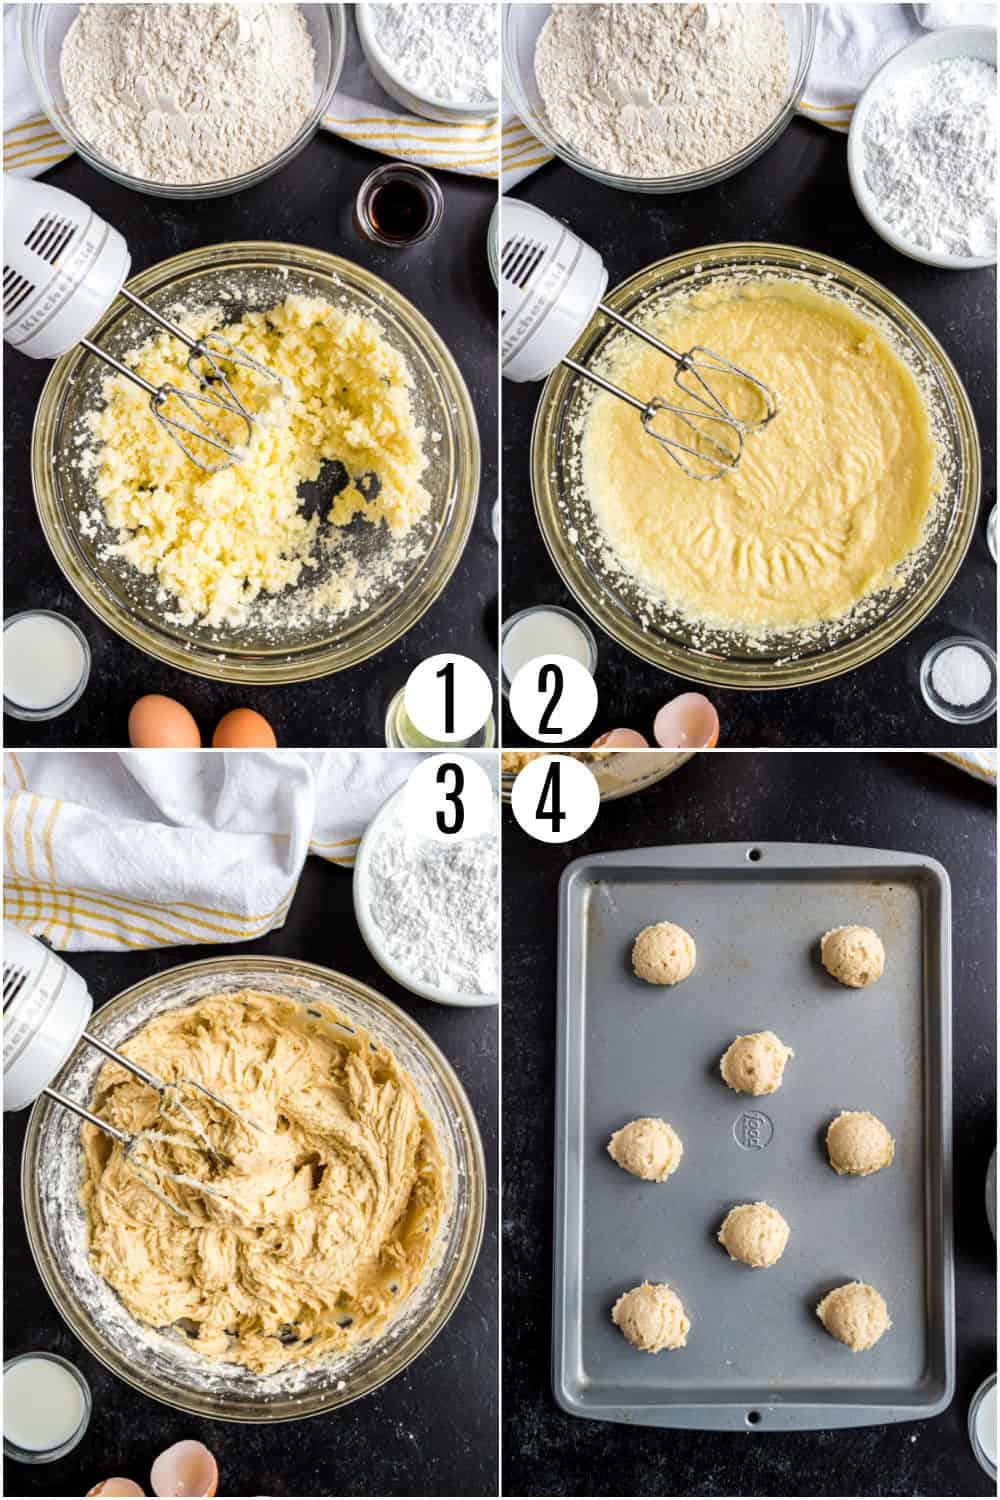 Step by step photos showing how to make lemon ricotta cookies.